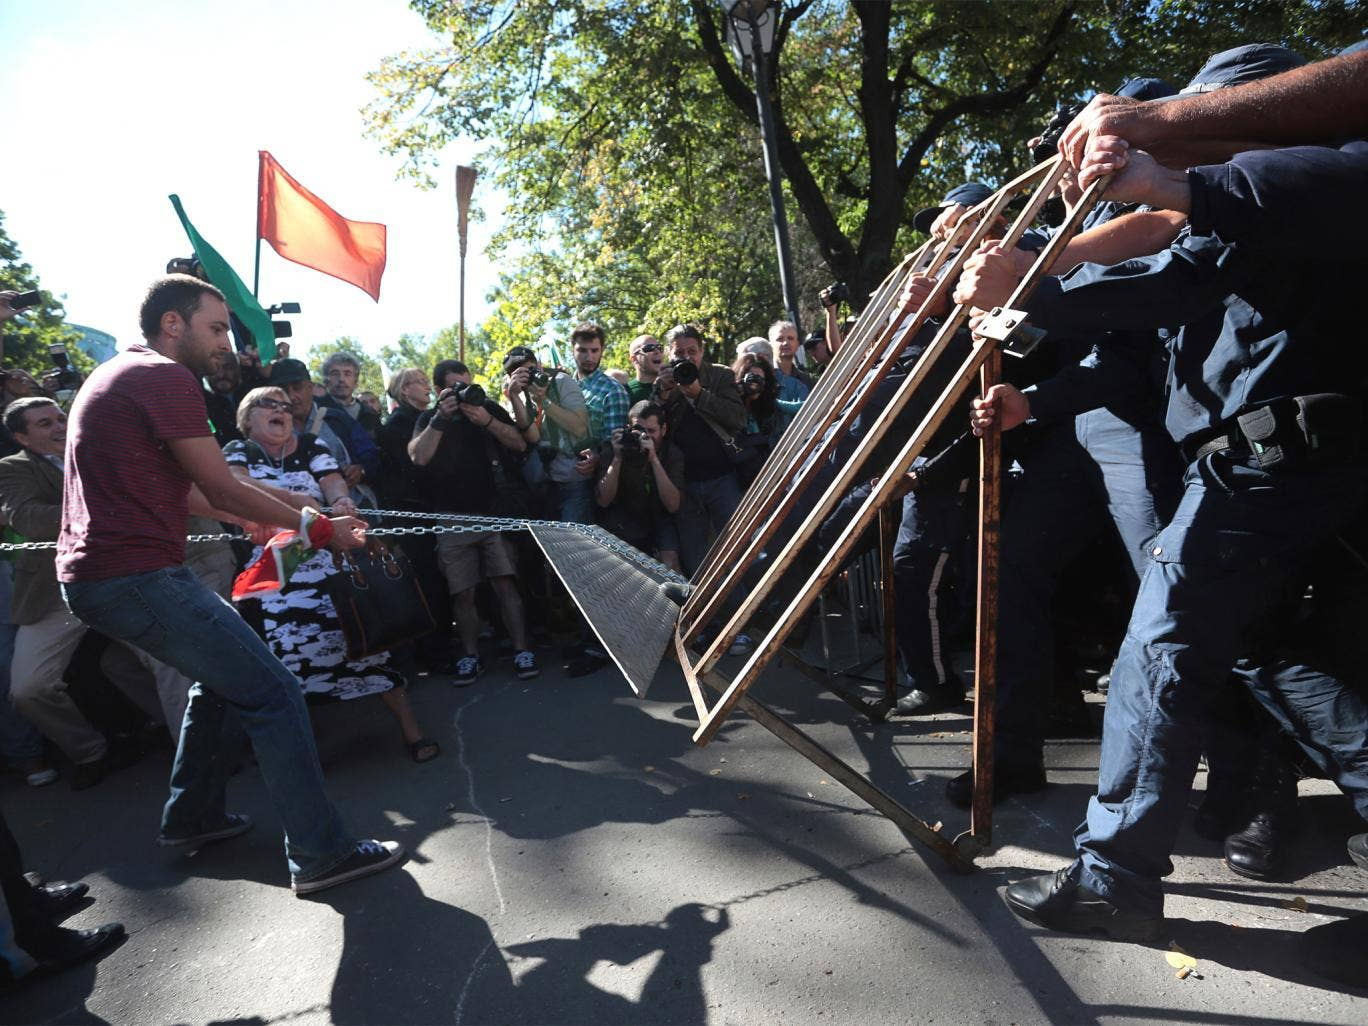 Protesters and police struggle over a fence near parliament